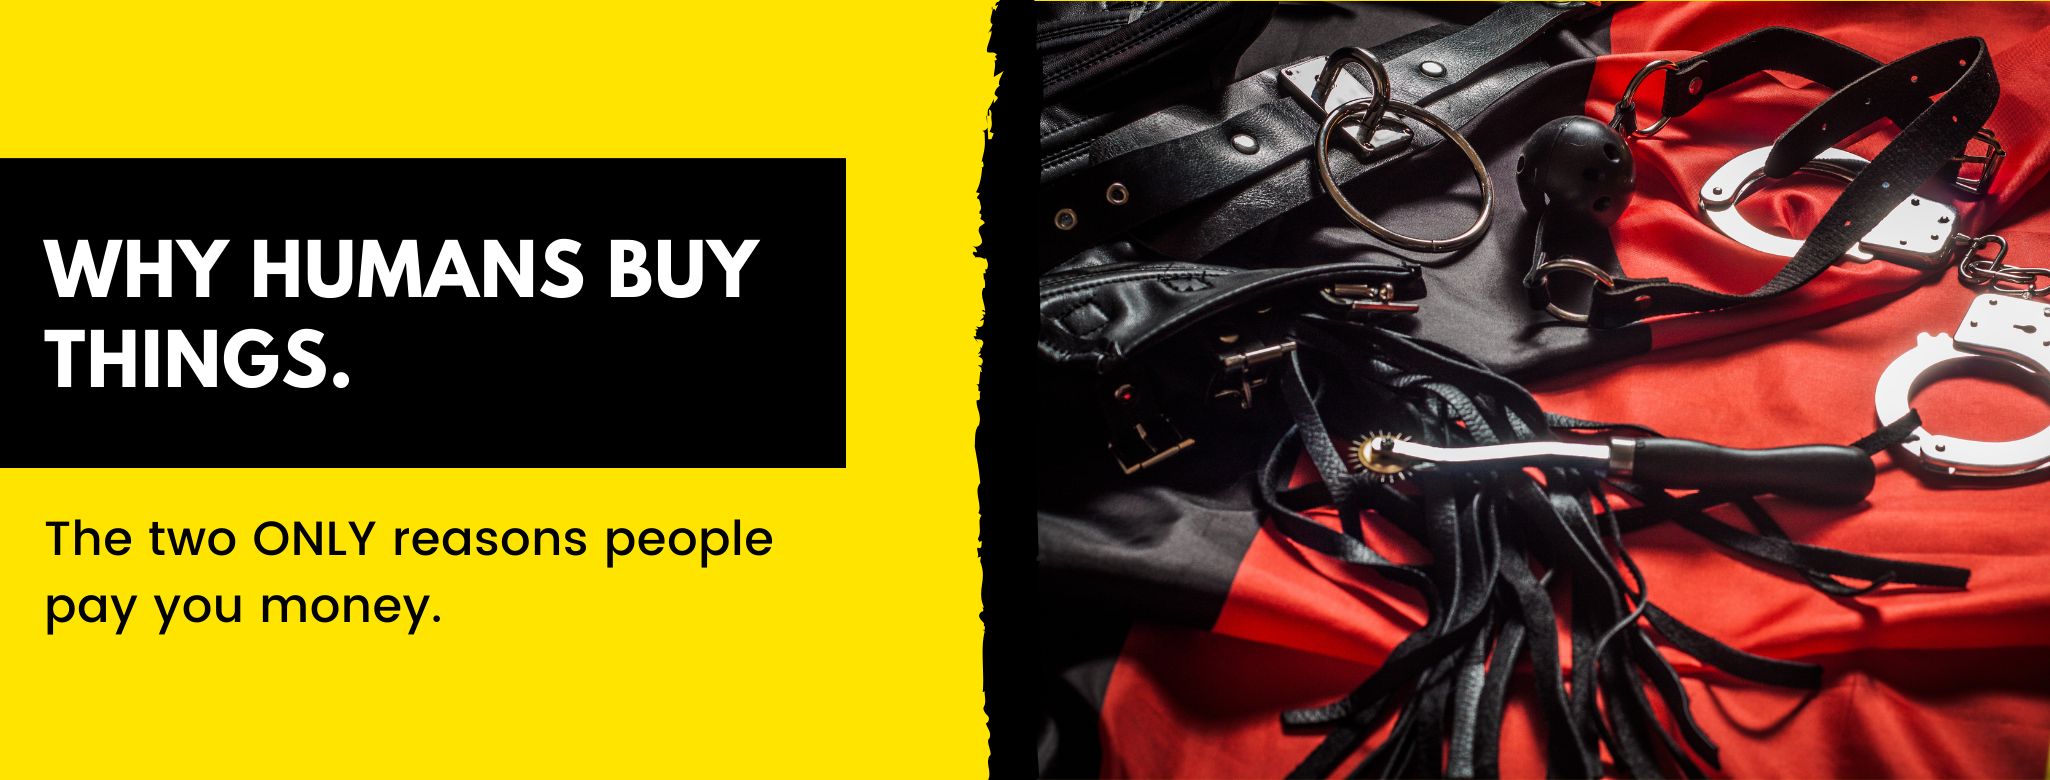 What makes humans buy?